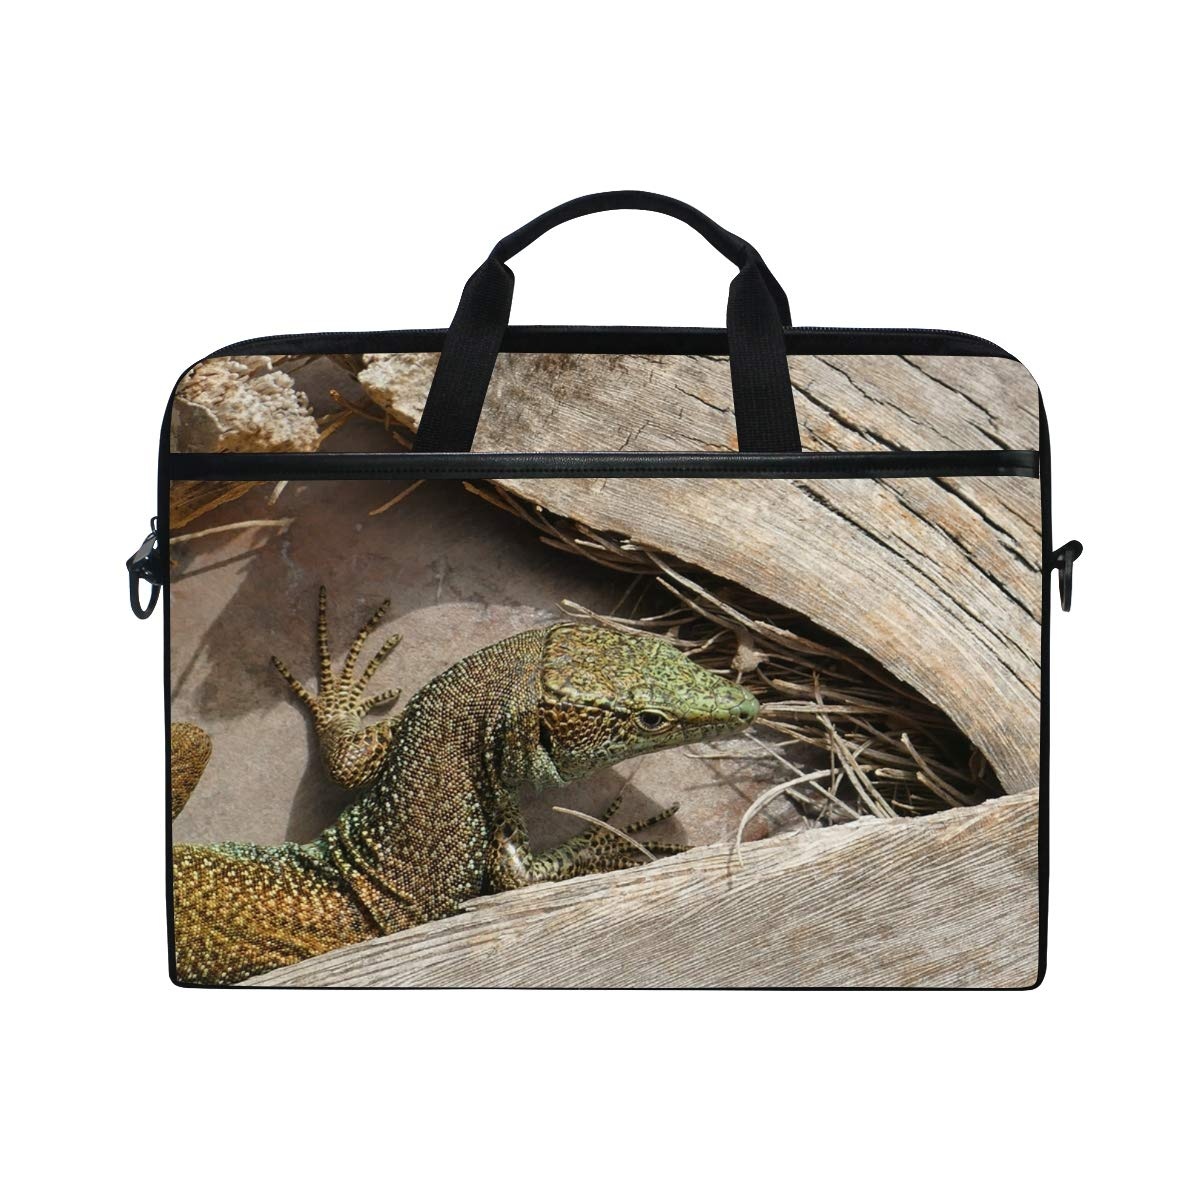 Lizard Mens and Womens Computer Bags Shoulder Bags Handbags Briefcases Suitable for 15 Inch Computers